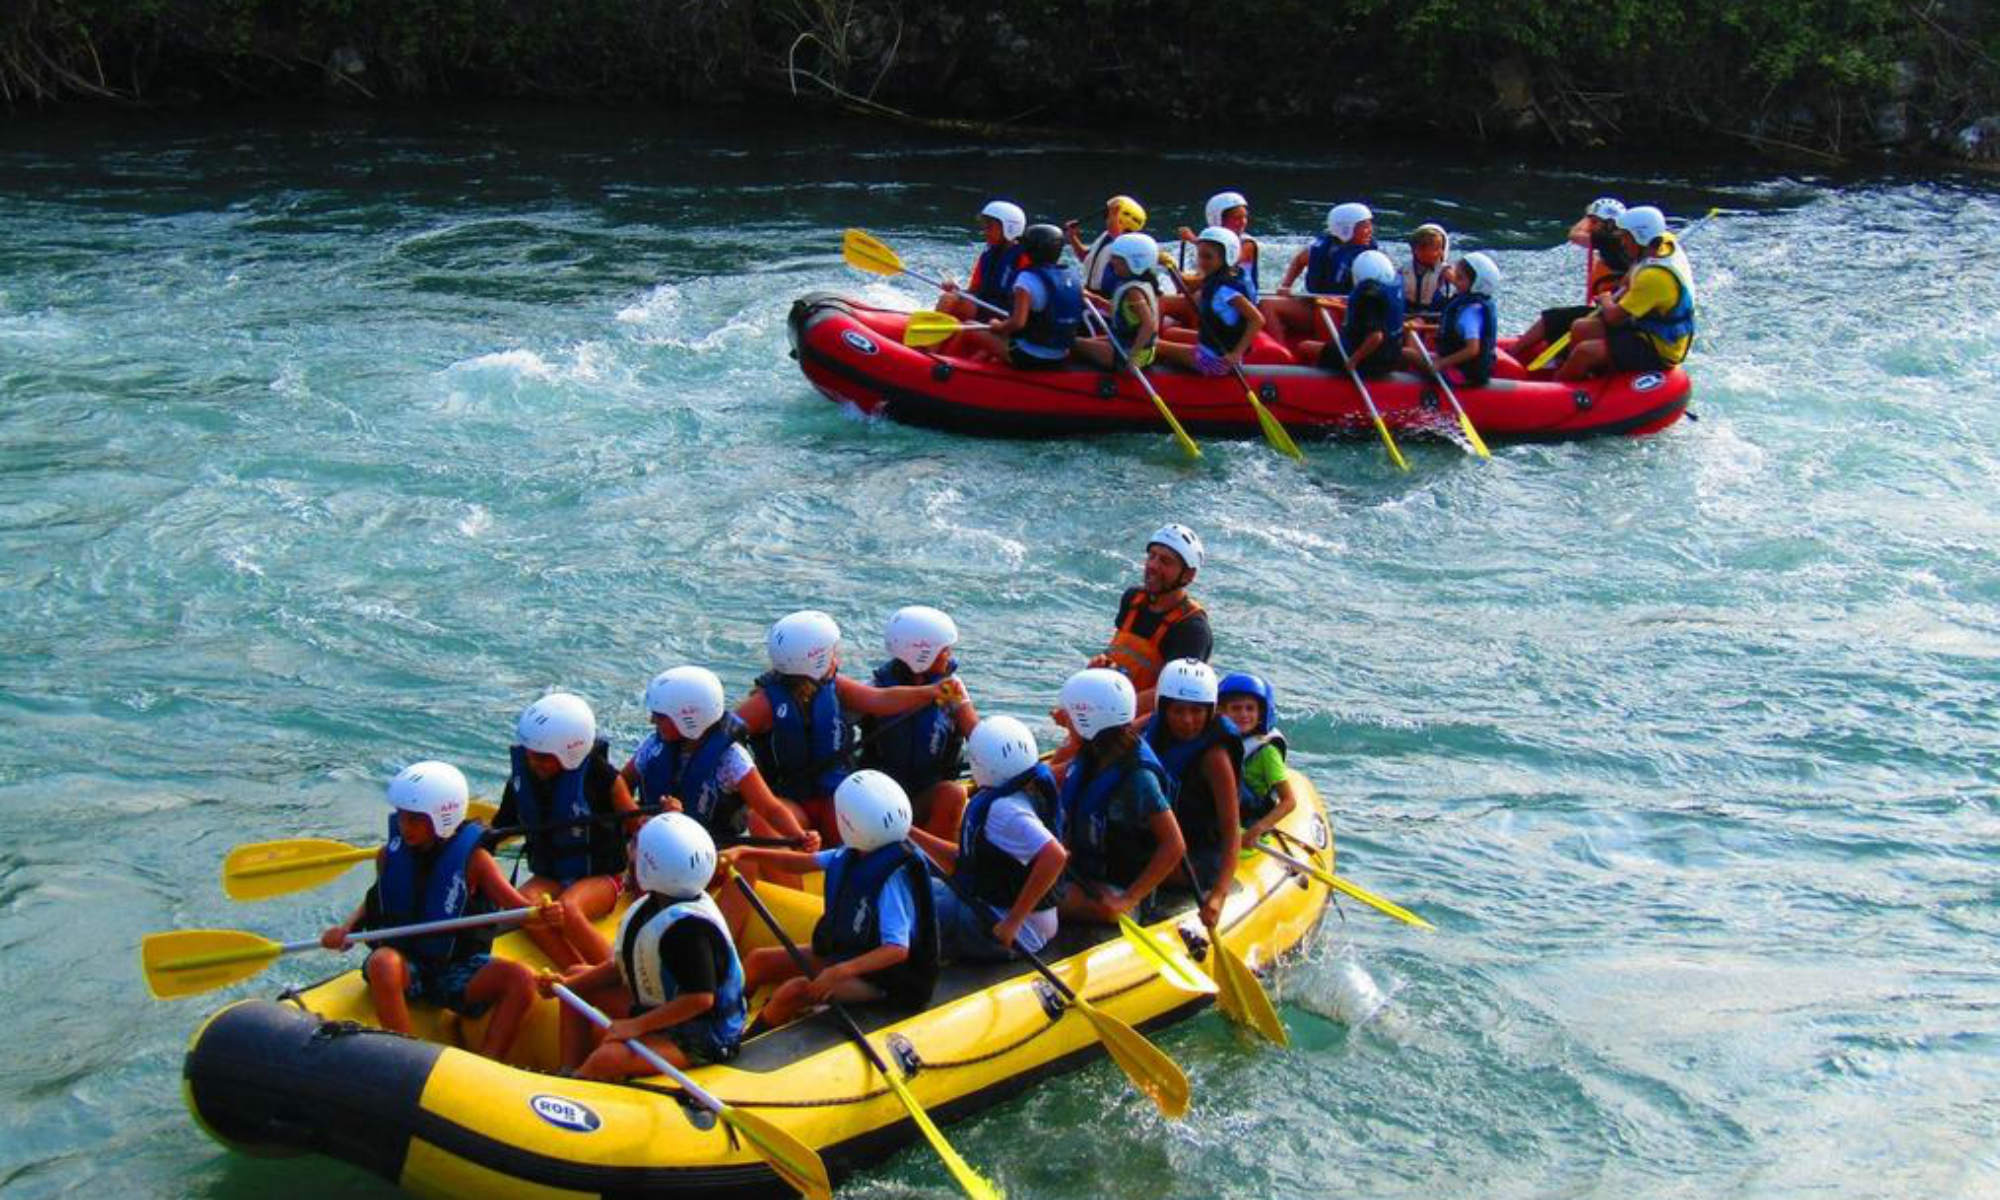 rafting groups navigating their boats along the Gari River in Italy.